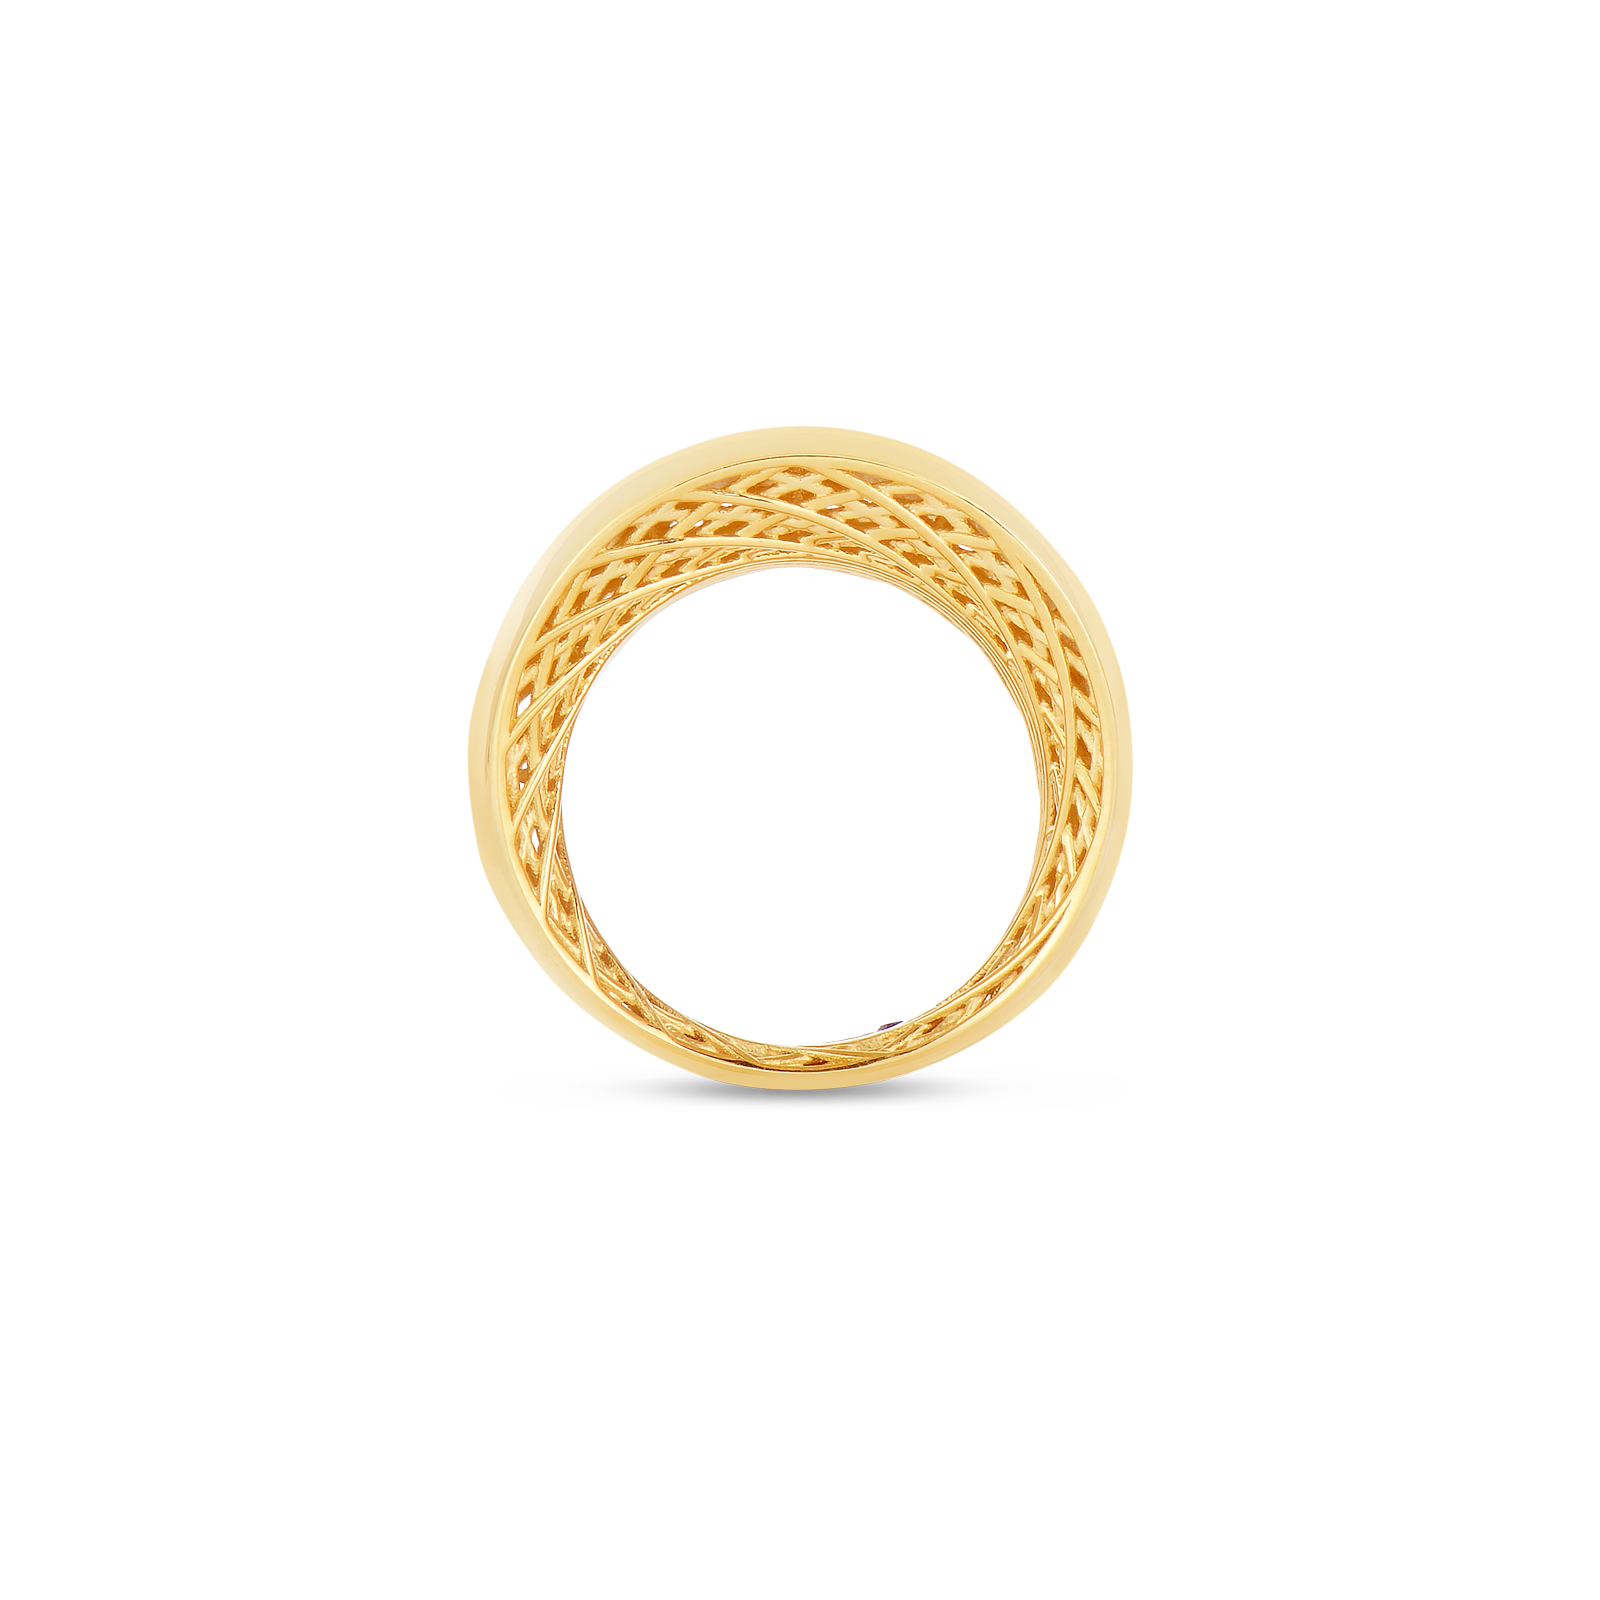 Roberto-Coin-Golden-Gate-18K-Yellow-Gold-and-18K-White-Gold-Ring-with-Diamonds-7771157AJ65X_2